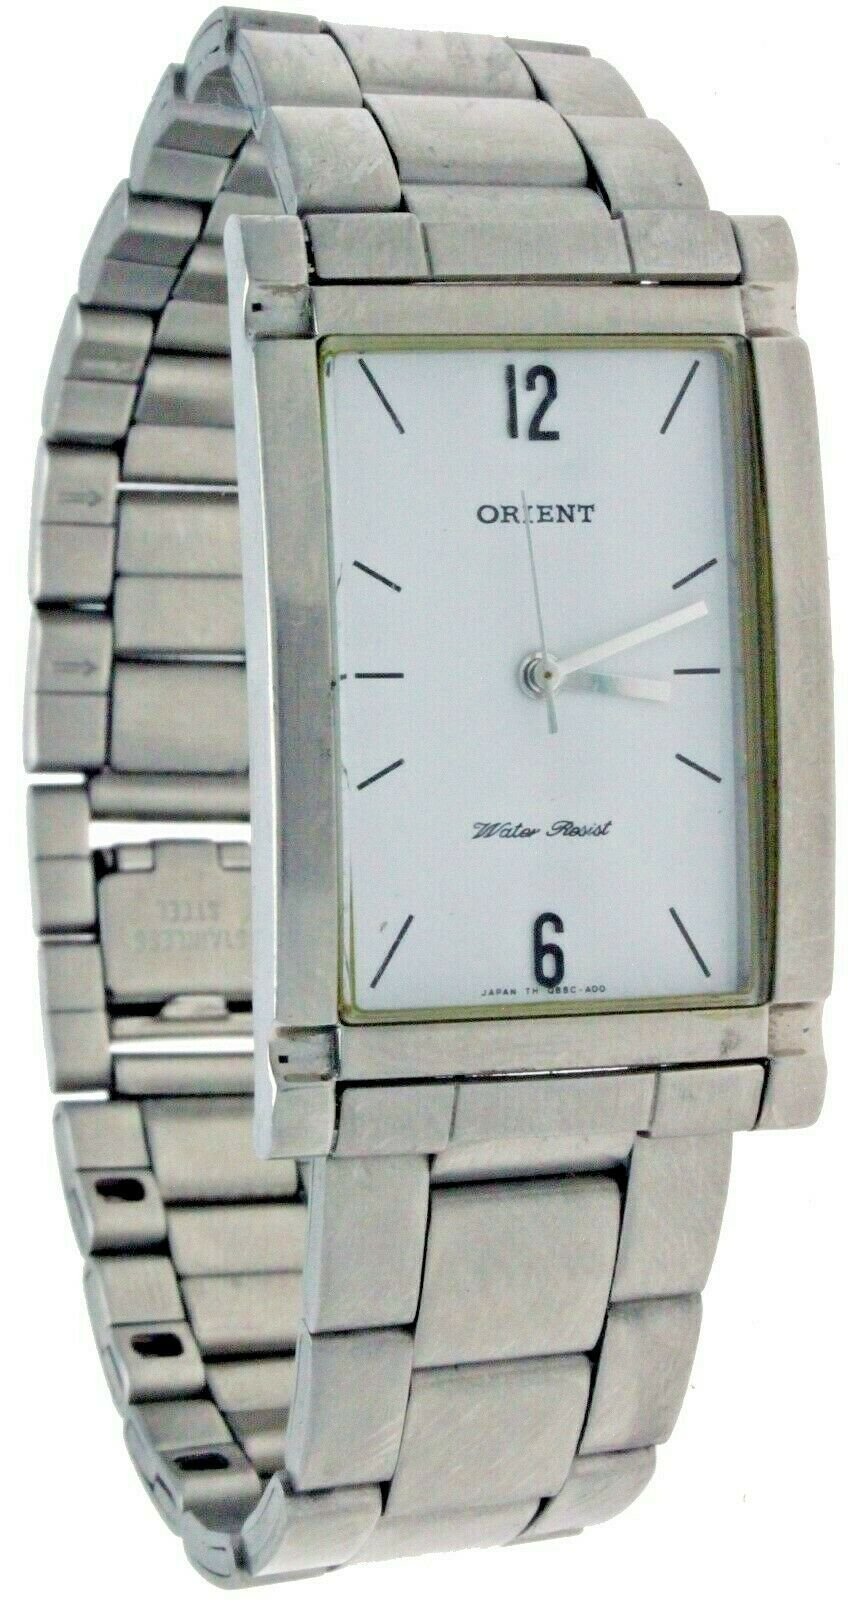 Primary image for New ORIENT Quartz Stainles Steel Band & Case White Dial Watch Water Resistant